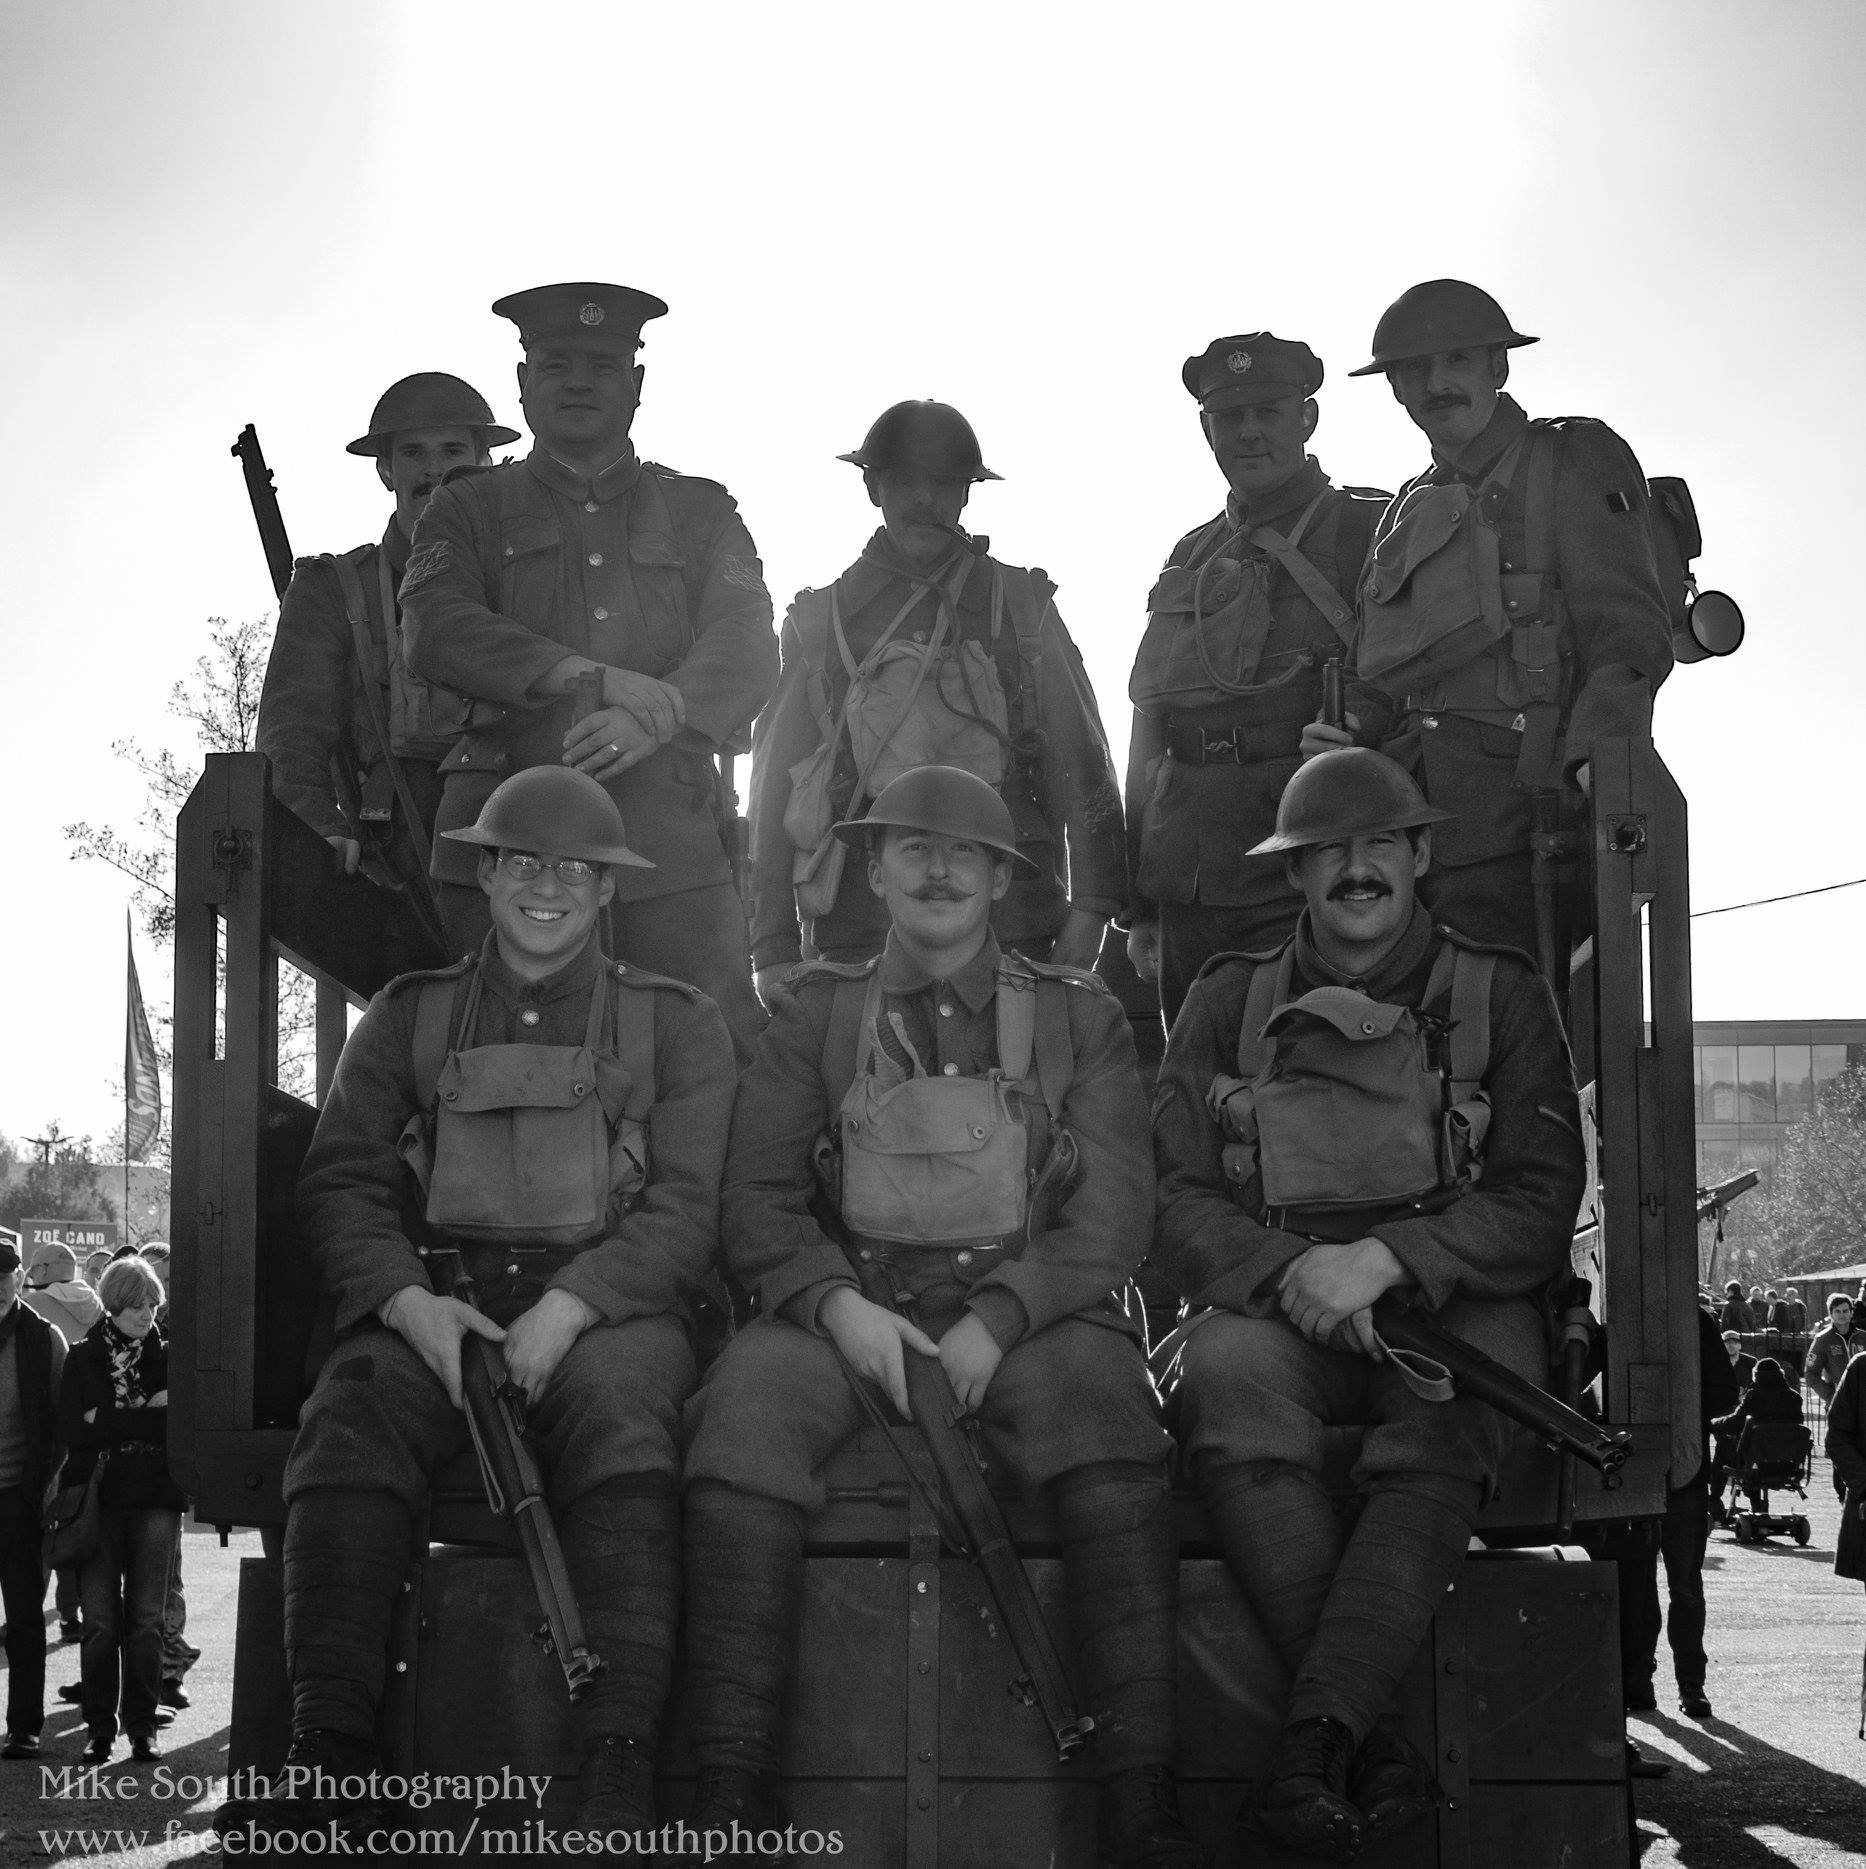 Some of the lads from the 10th Essex and our friends from the 2nd Battalion Bord...